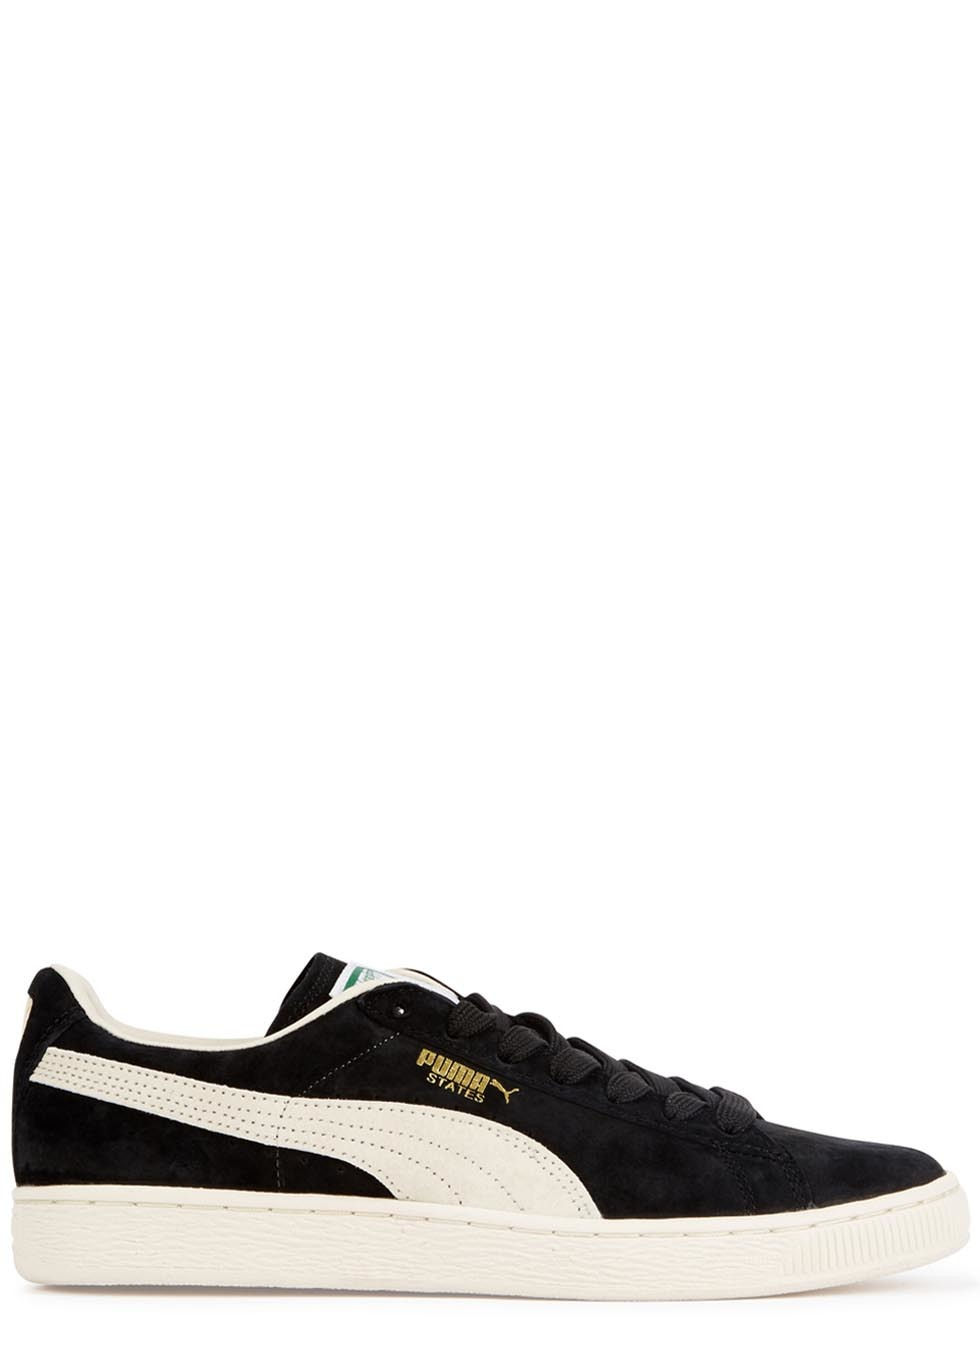 Black Suede Trainers - secondary colour: white; predominant colour: black; occasions: casual; material: suede; heel height: flat; toe: round toe; style: trainers; finish: plain; pattern: colourblock; shoe detail: moulded soul; season: a/w 2015; wardrobe: highlight